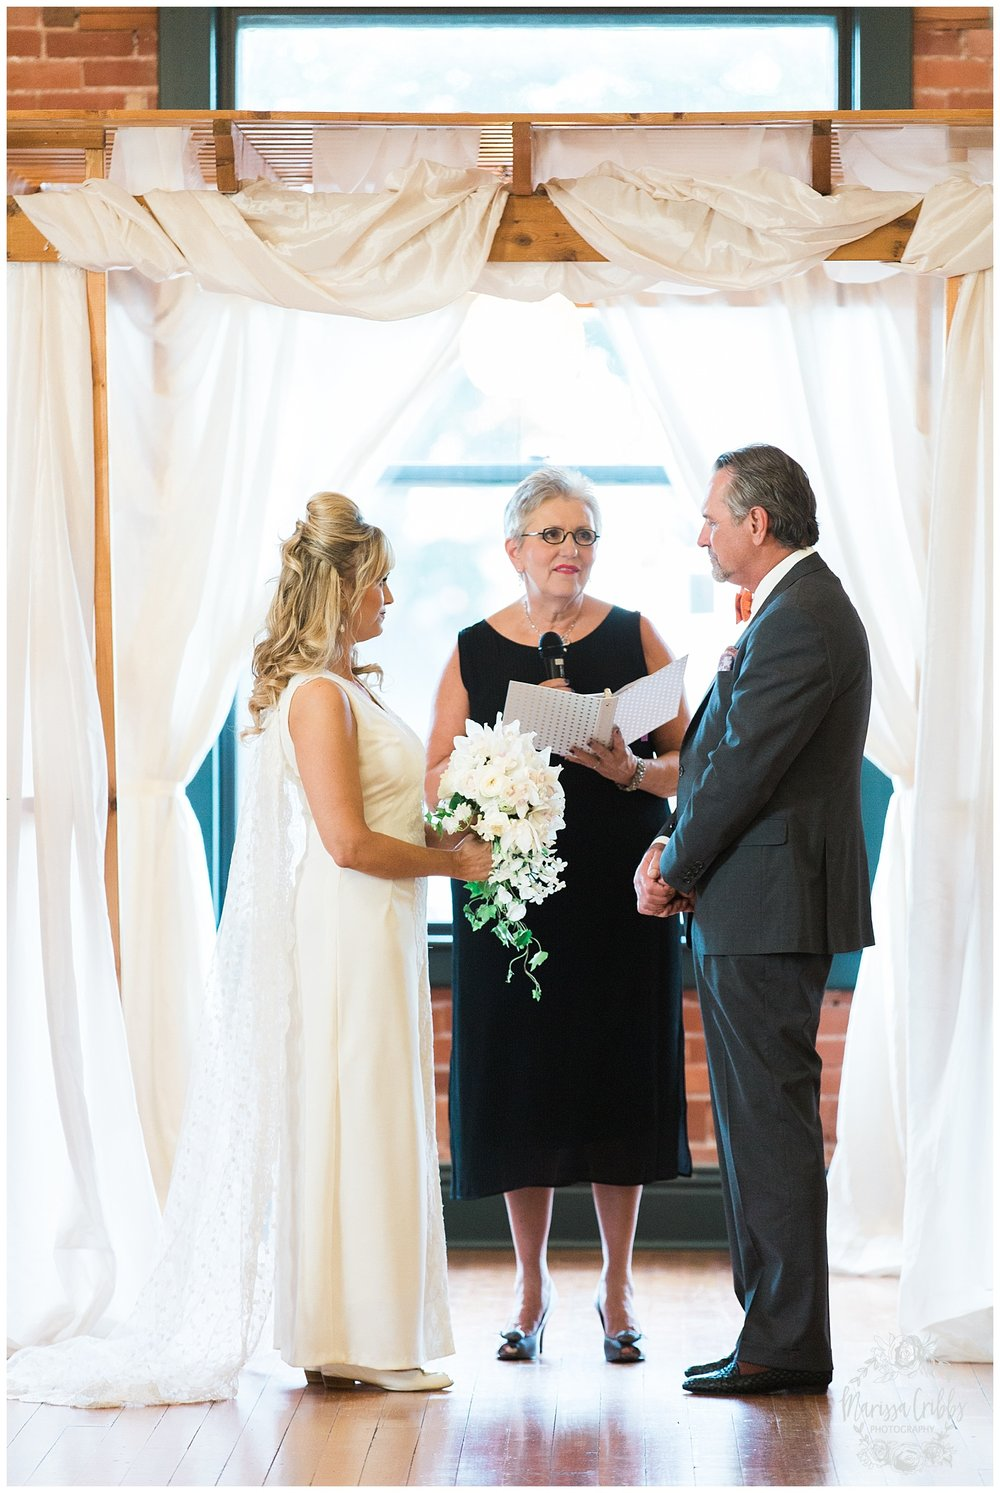 TOWN SQUARE PAOLA WEDDING | BRANDY & TERRY | MARISSA CRIBBS PHOTOGRAPHY_3103.jpg